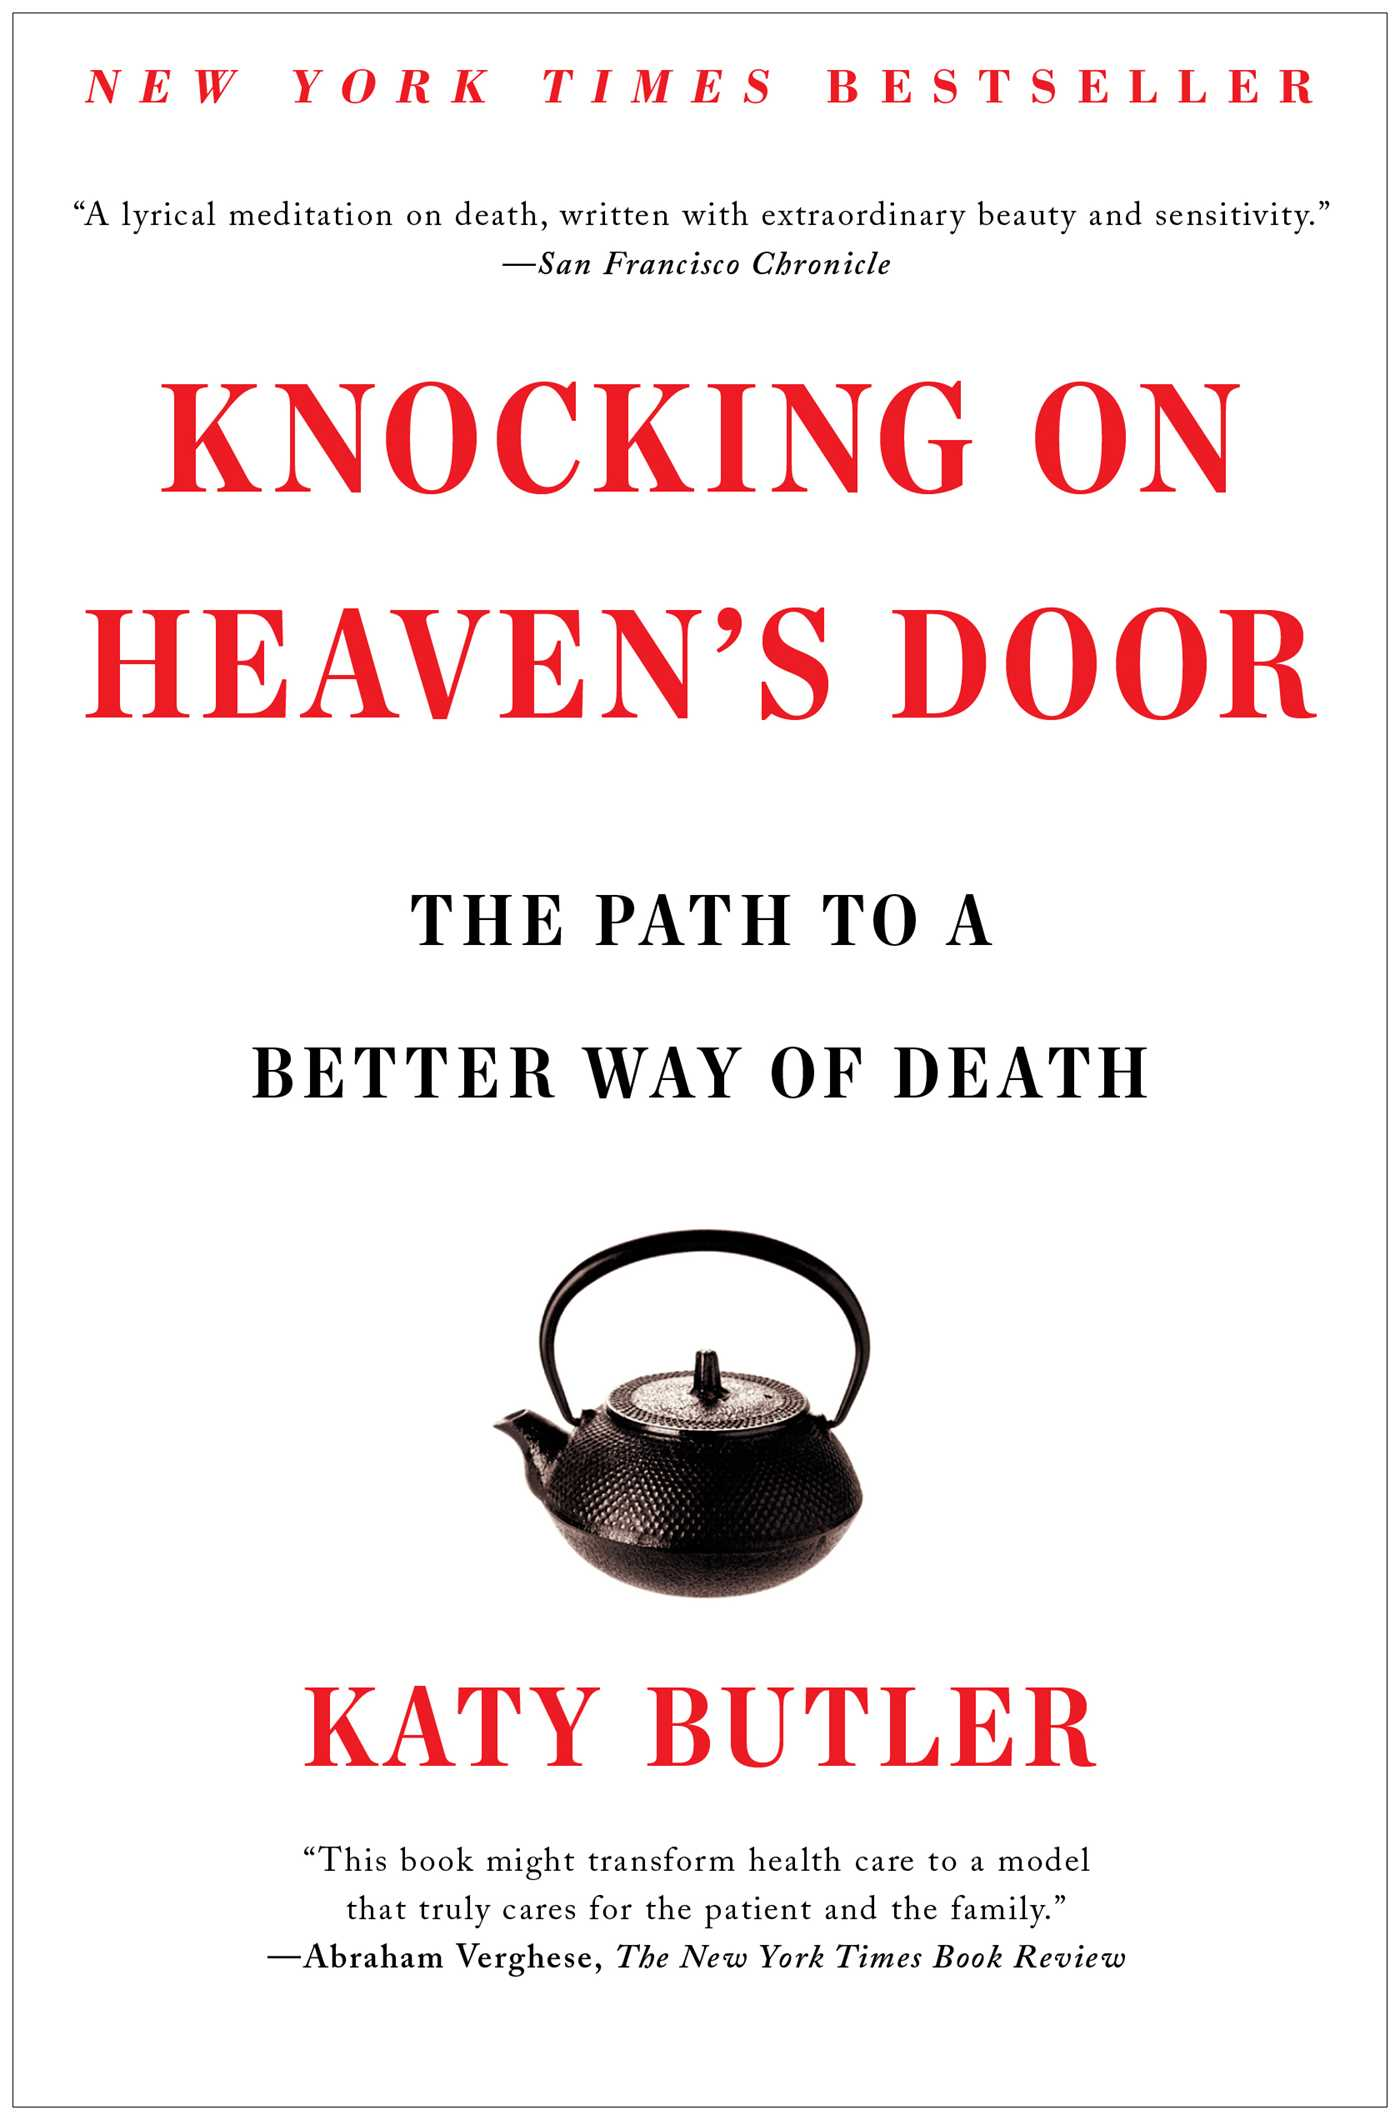 come a knocking on deaths door essay Knocking on death's doorloudly february 1,  when four people we had come to know and love as part of the harvest community died with little warning: .